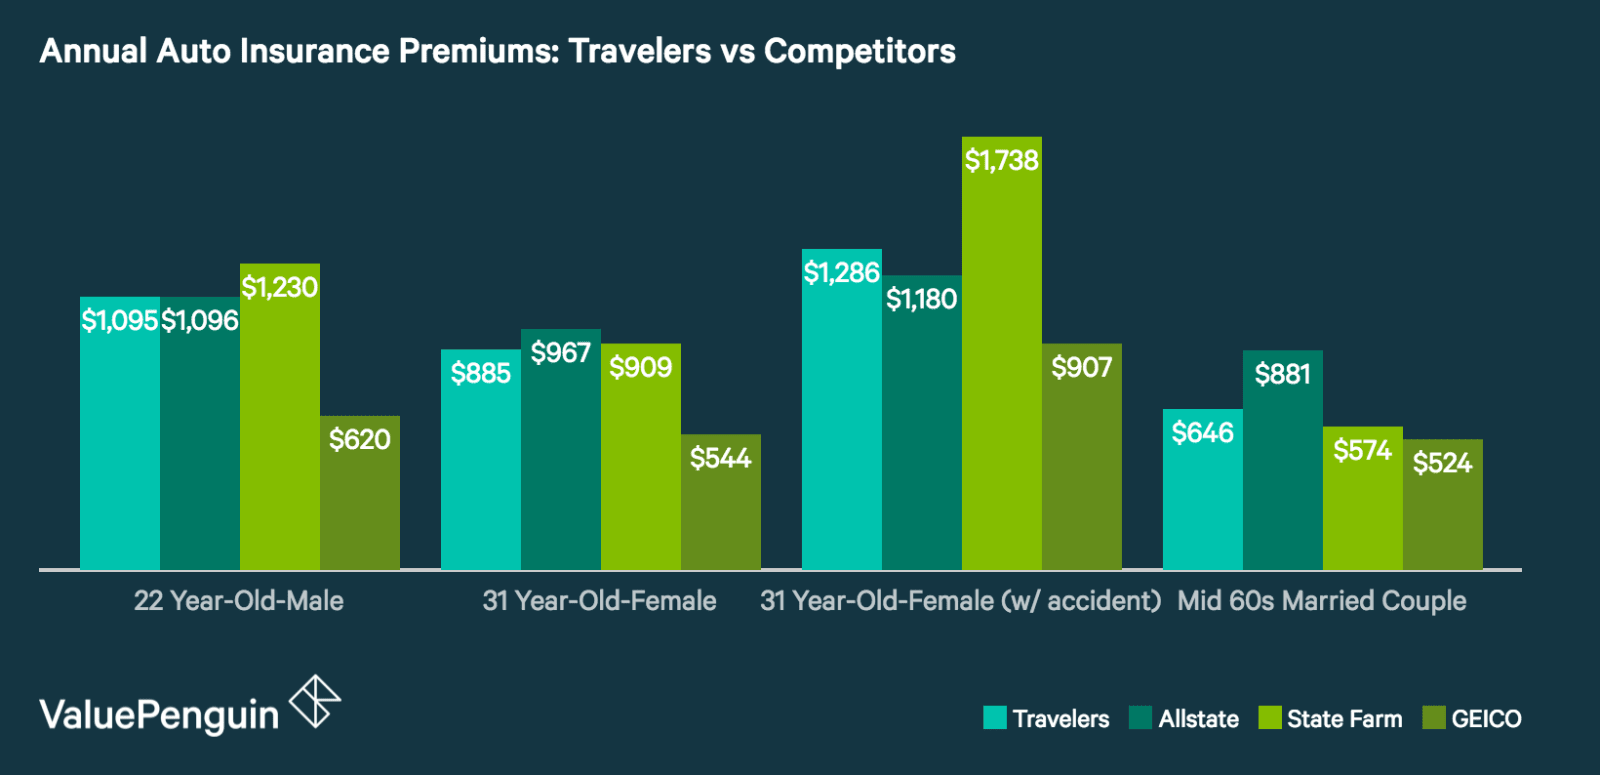 How Do Travelers' Auto Insurance Quotes Compare to Other Insurers?